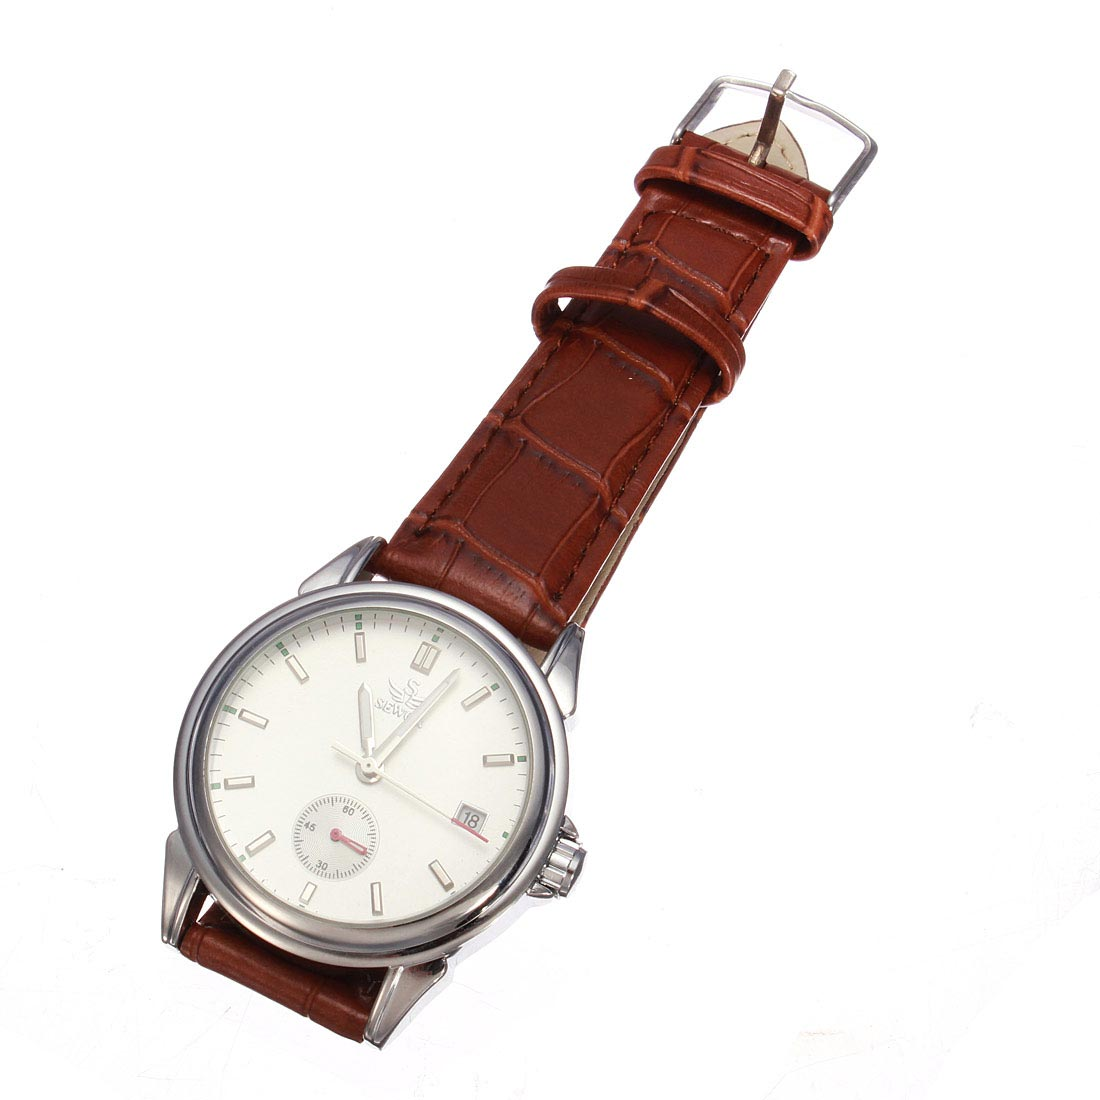 sewor mechanical leather simple style men wrist watch us 14 29 sewor mechanical leather simple style men wrist watch